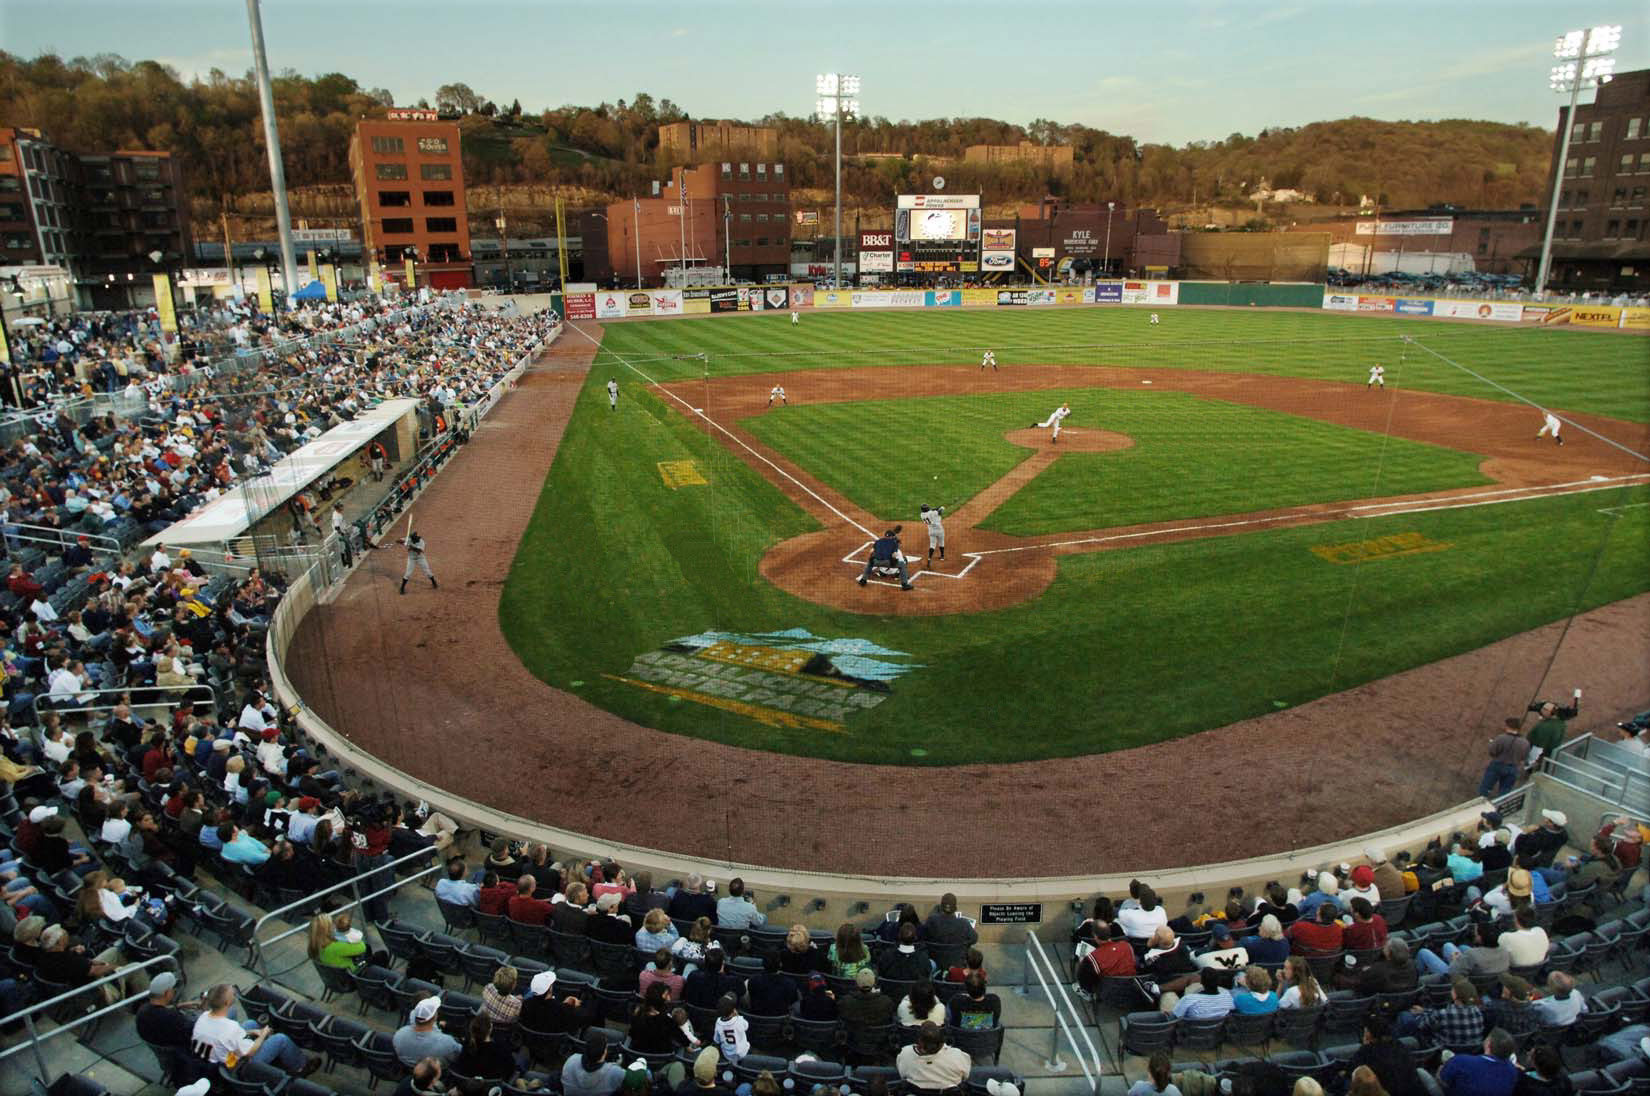 MLB owners, commissioner Manfred seek to crush West Virginia baseball - West Virginia MetroNews